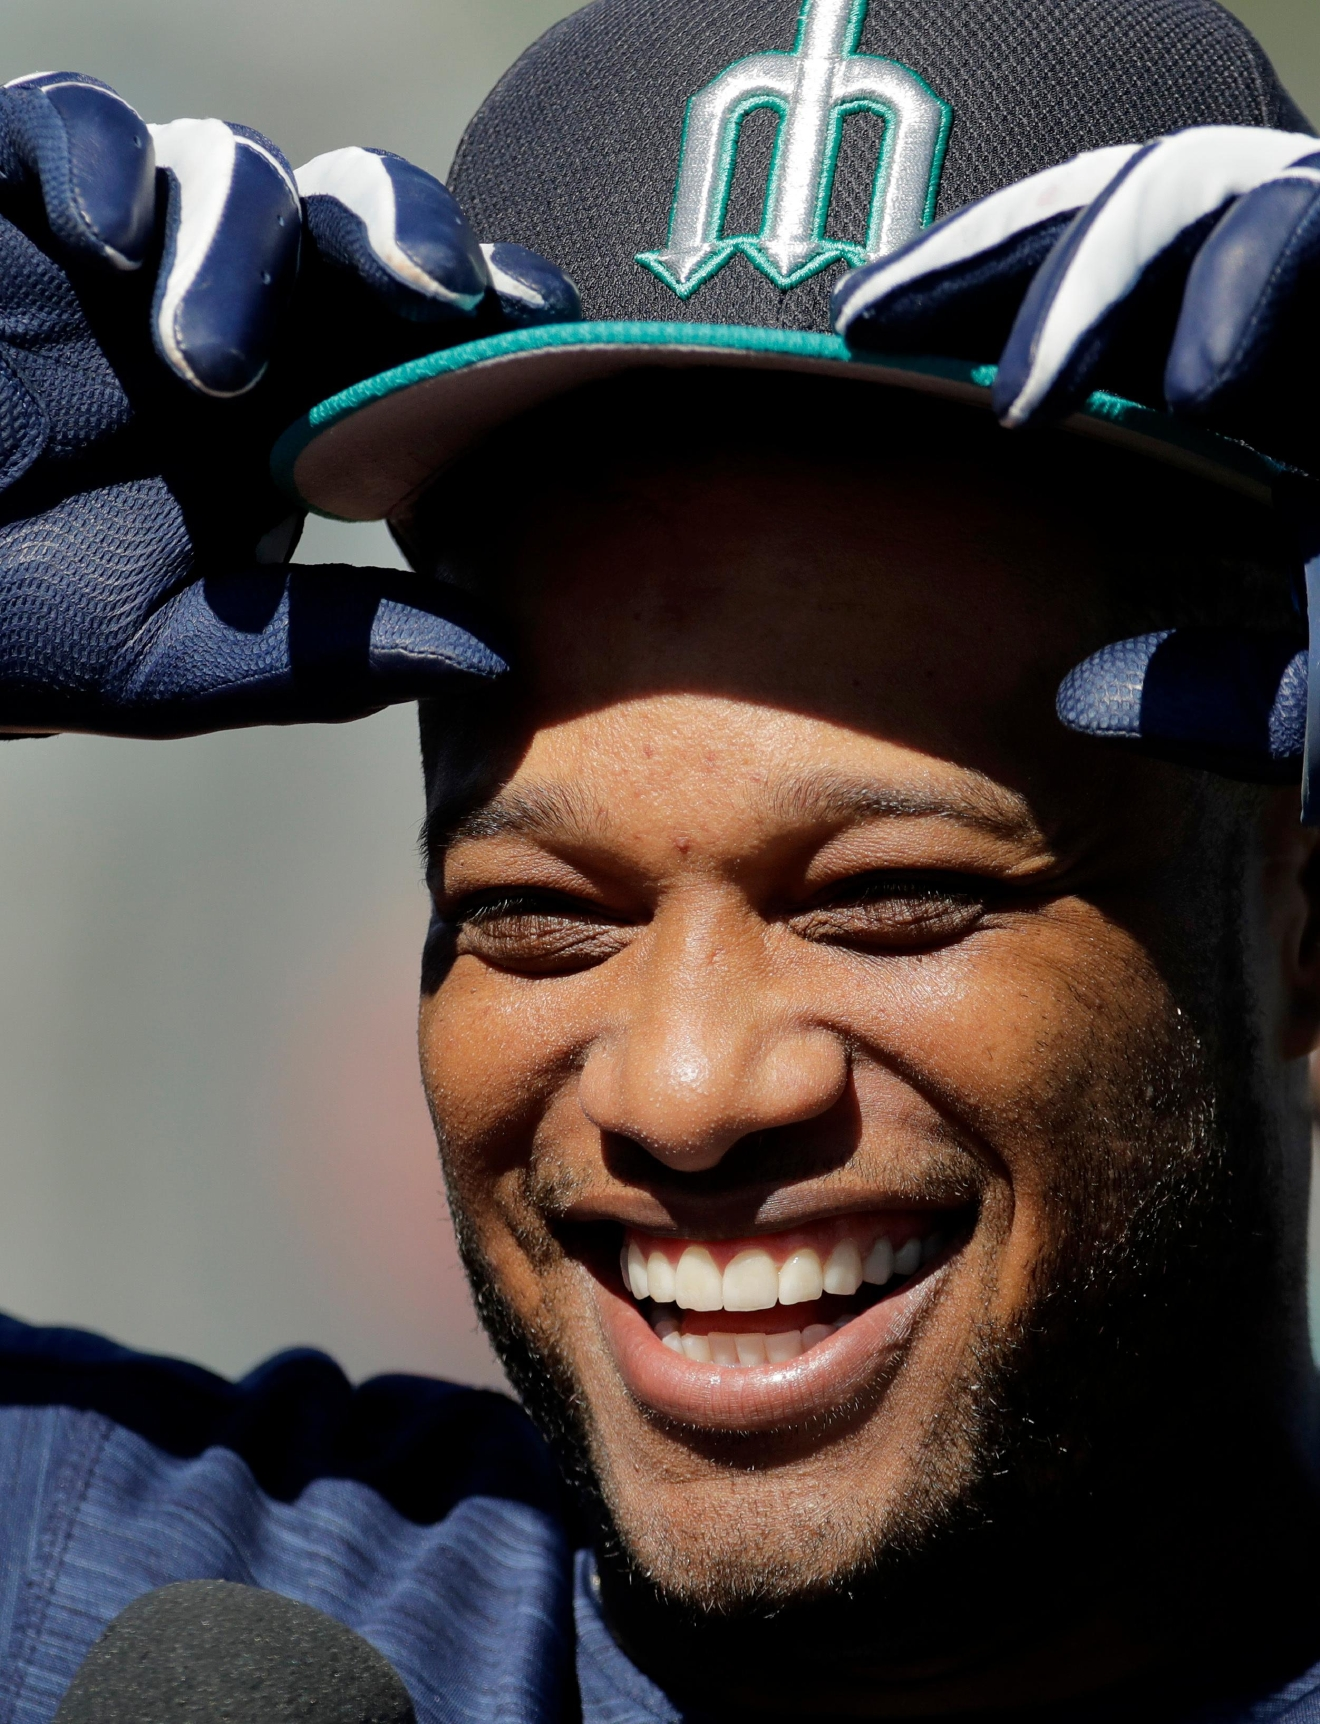 Seattle Mariners' Robinson Cano adjusts his cap during spring training baseball practice, Tuesday, Feb. 21, 2017, in Peoria, Ariz. (AP Photo/Charlie Riedel)